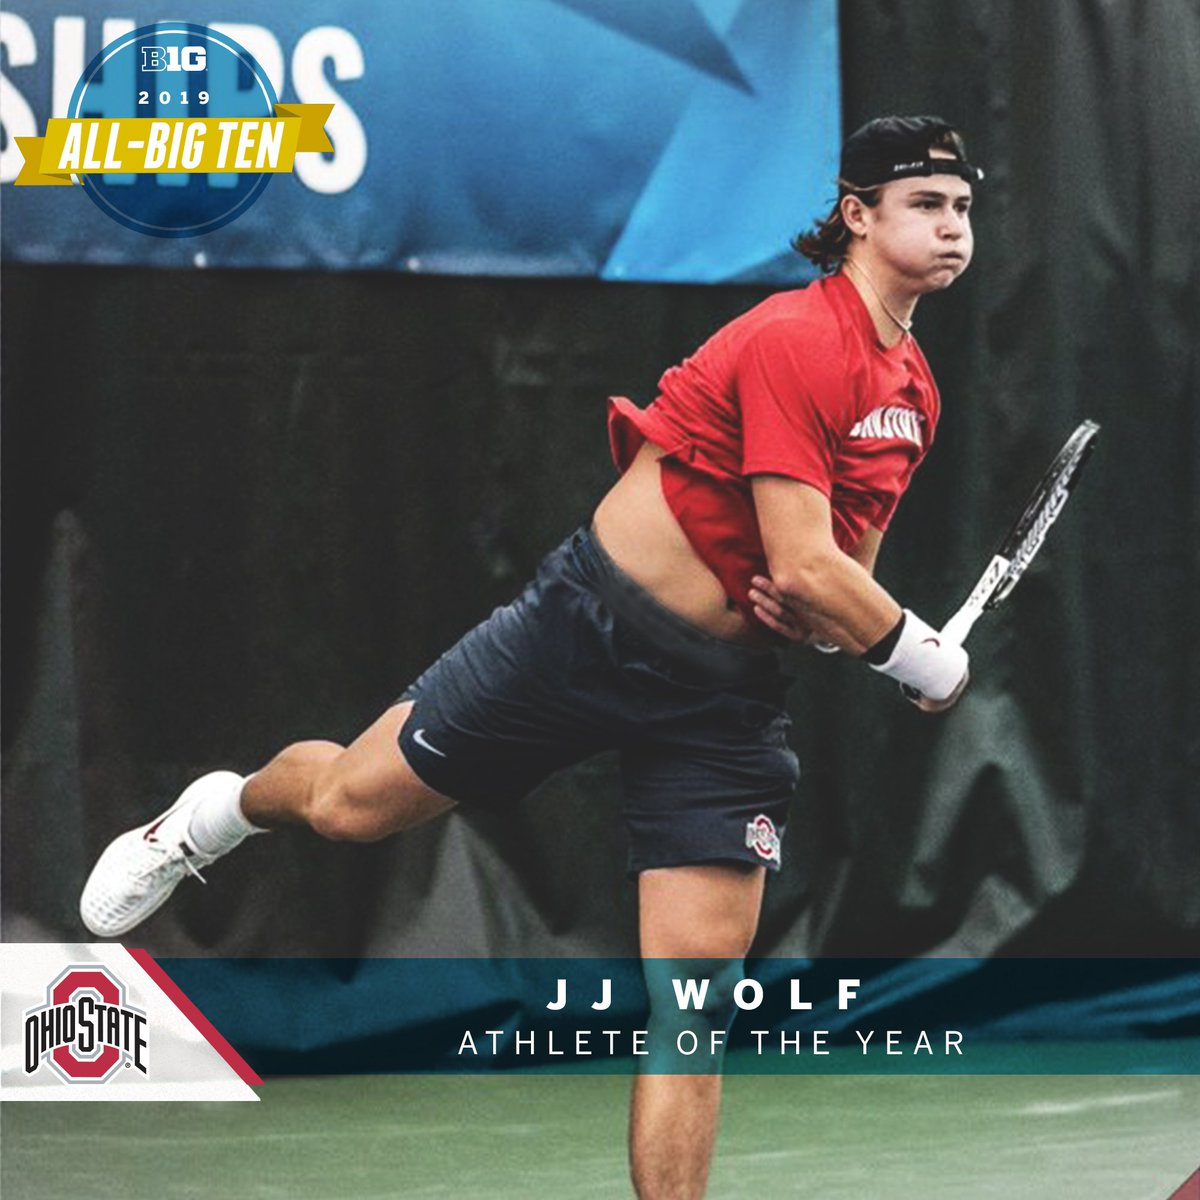 JJ Wolf of @OhioStateMTEN named 2019 #B1GMTennis Athlete of the Year.